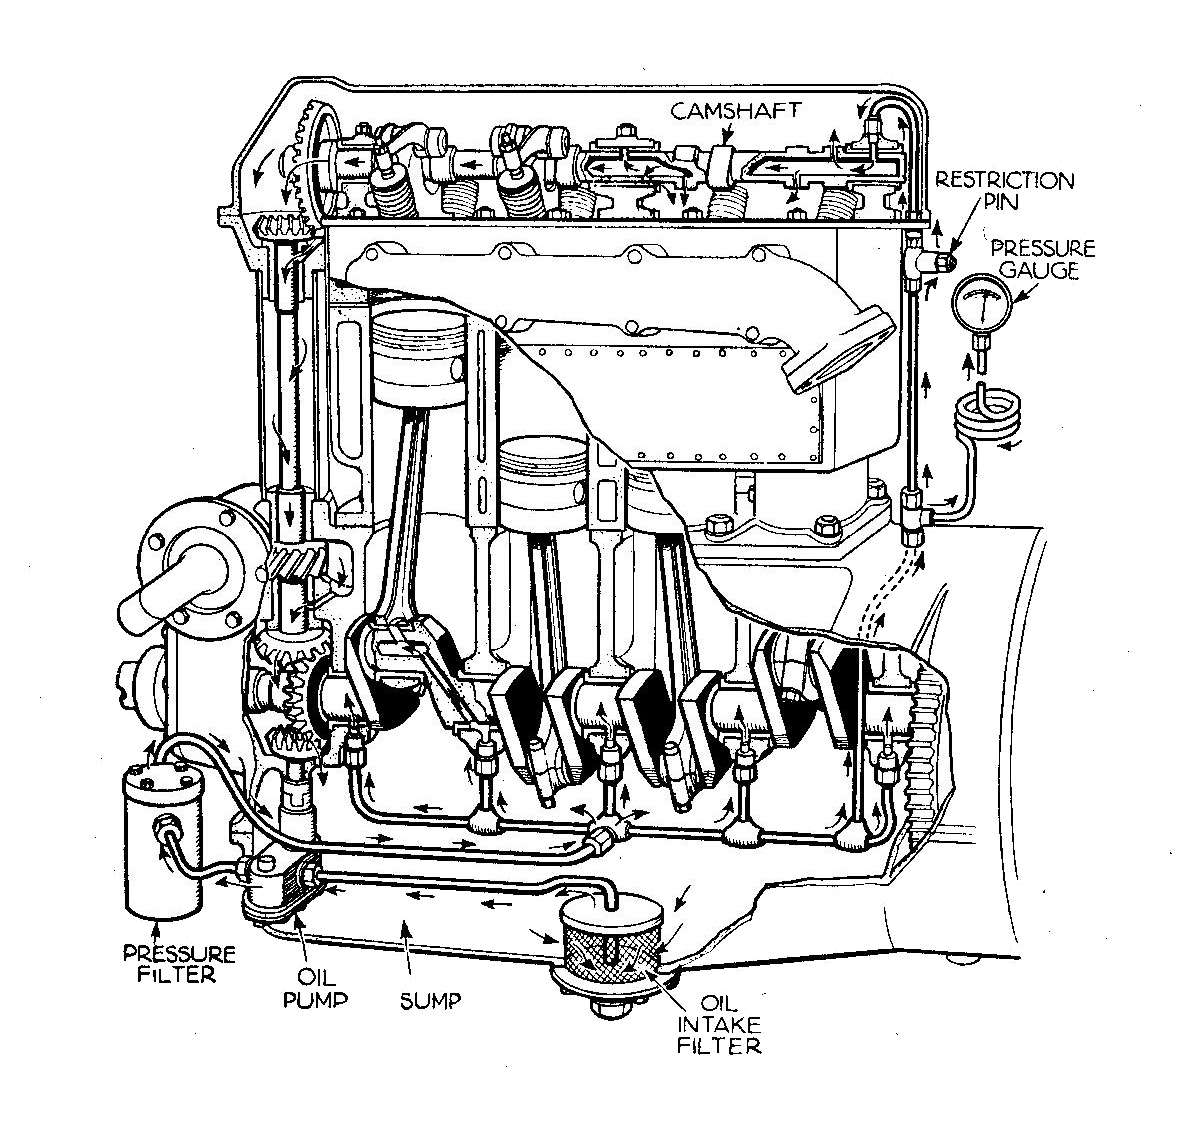 file overhead cam engine with forced oil lubrication